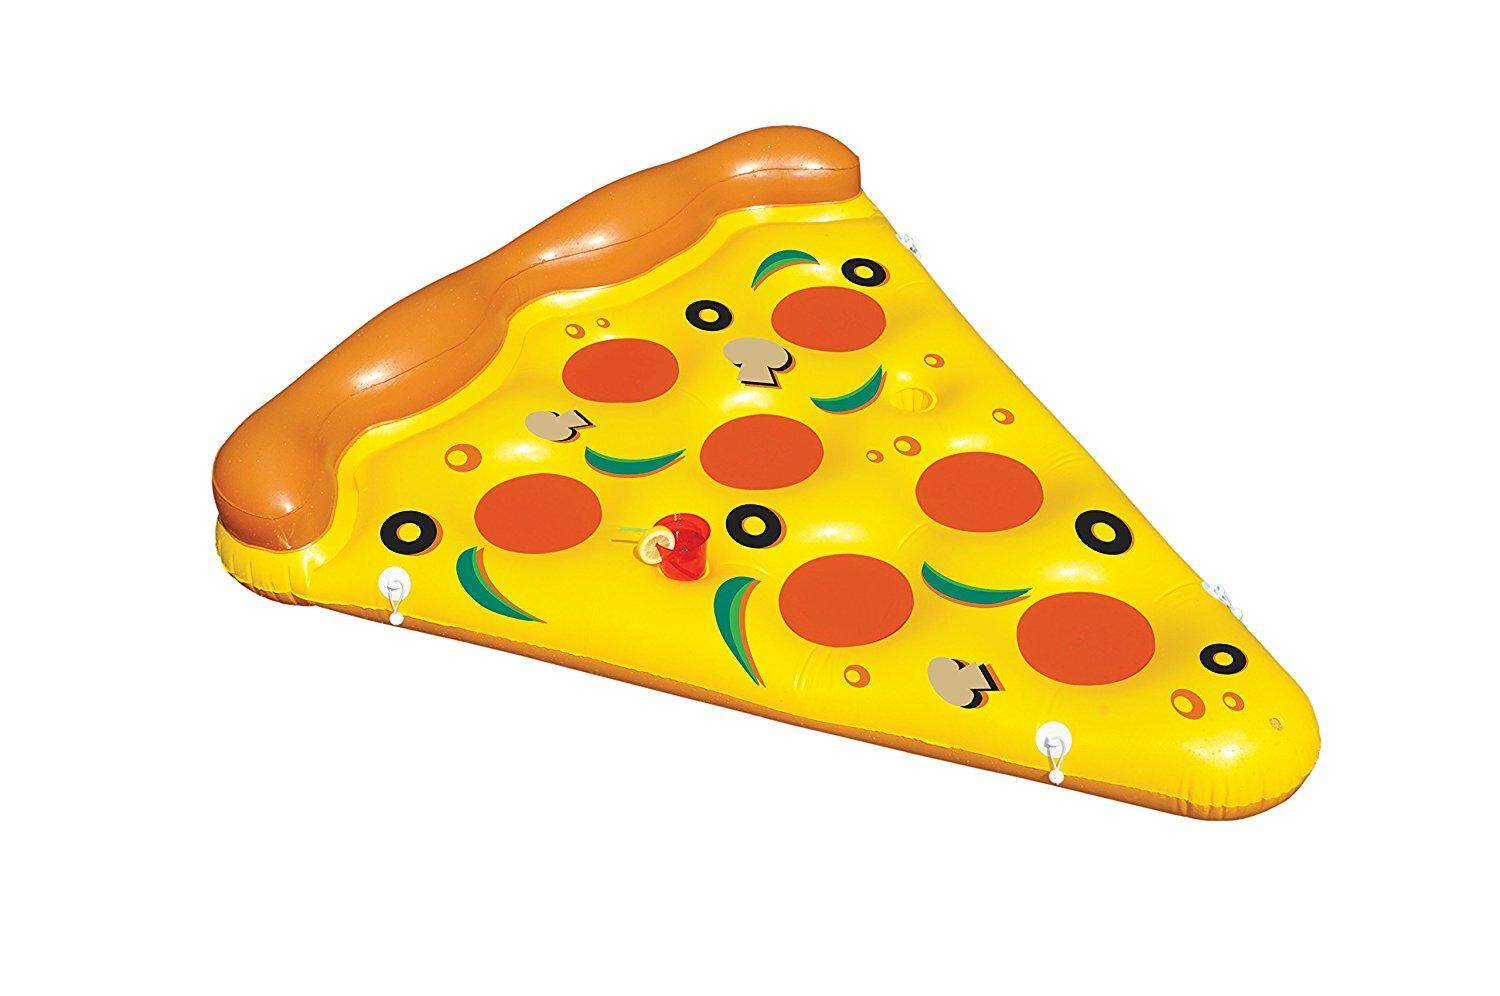 Wholesale Lumiparty Emorefun 6 Foot By 5 Foot Giant Inflatable Pizza Slice Float Intl